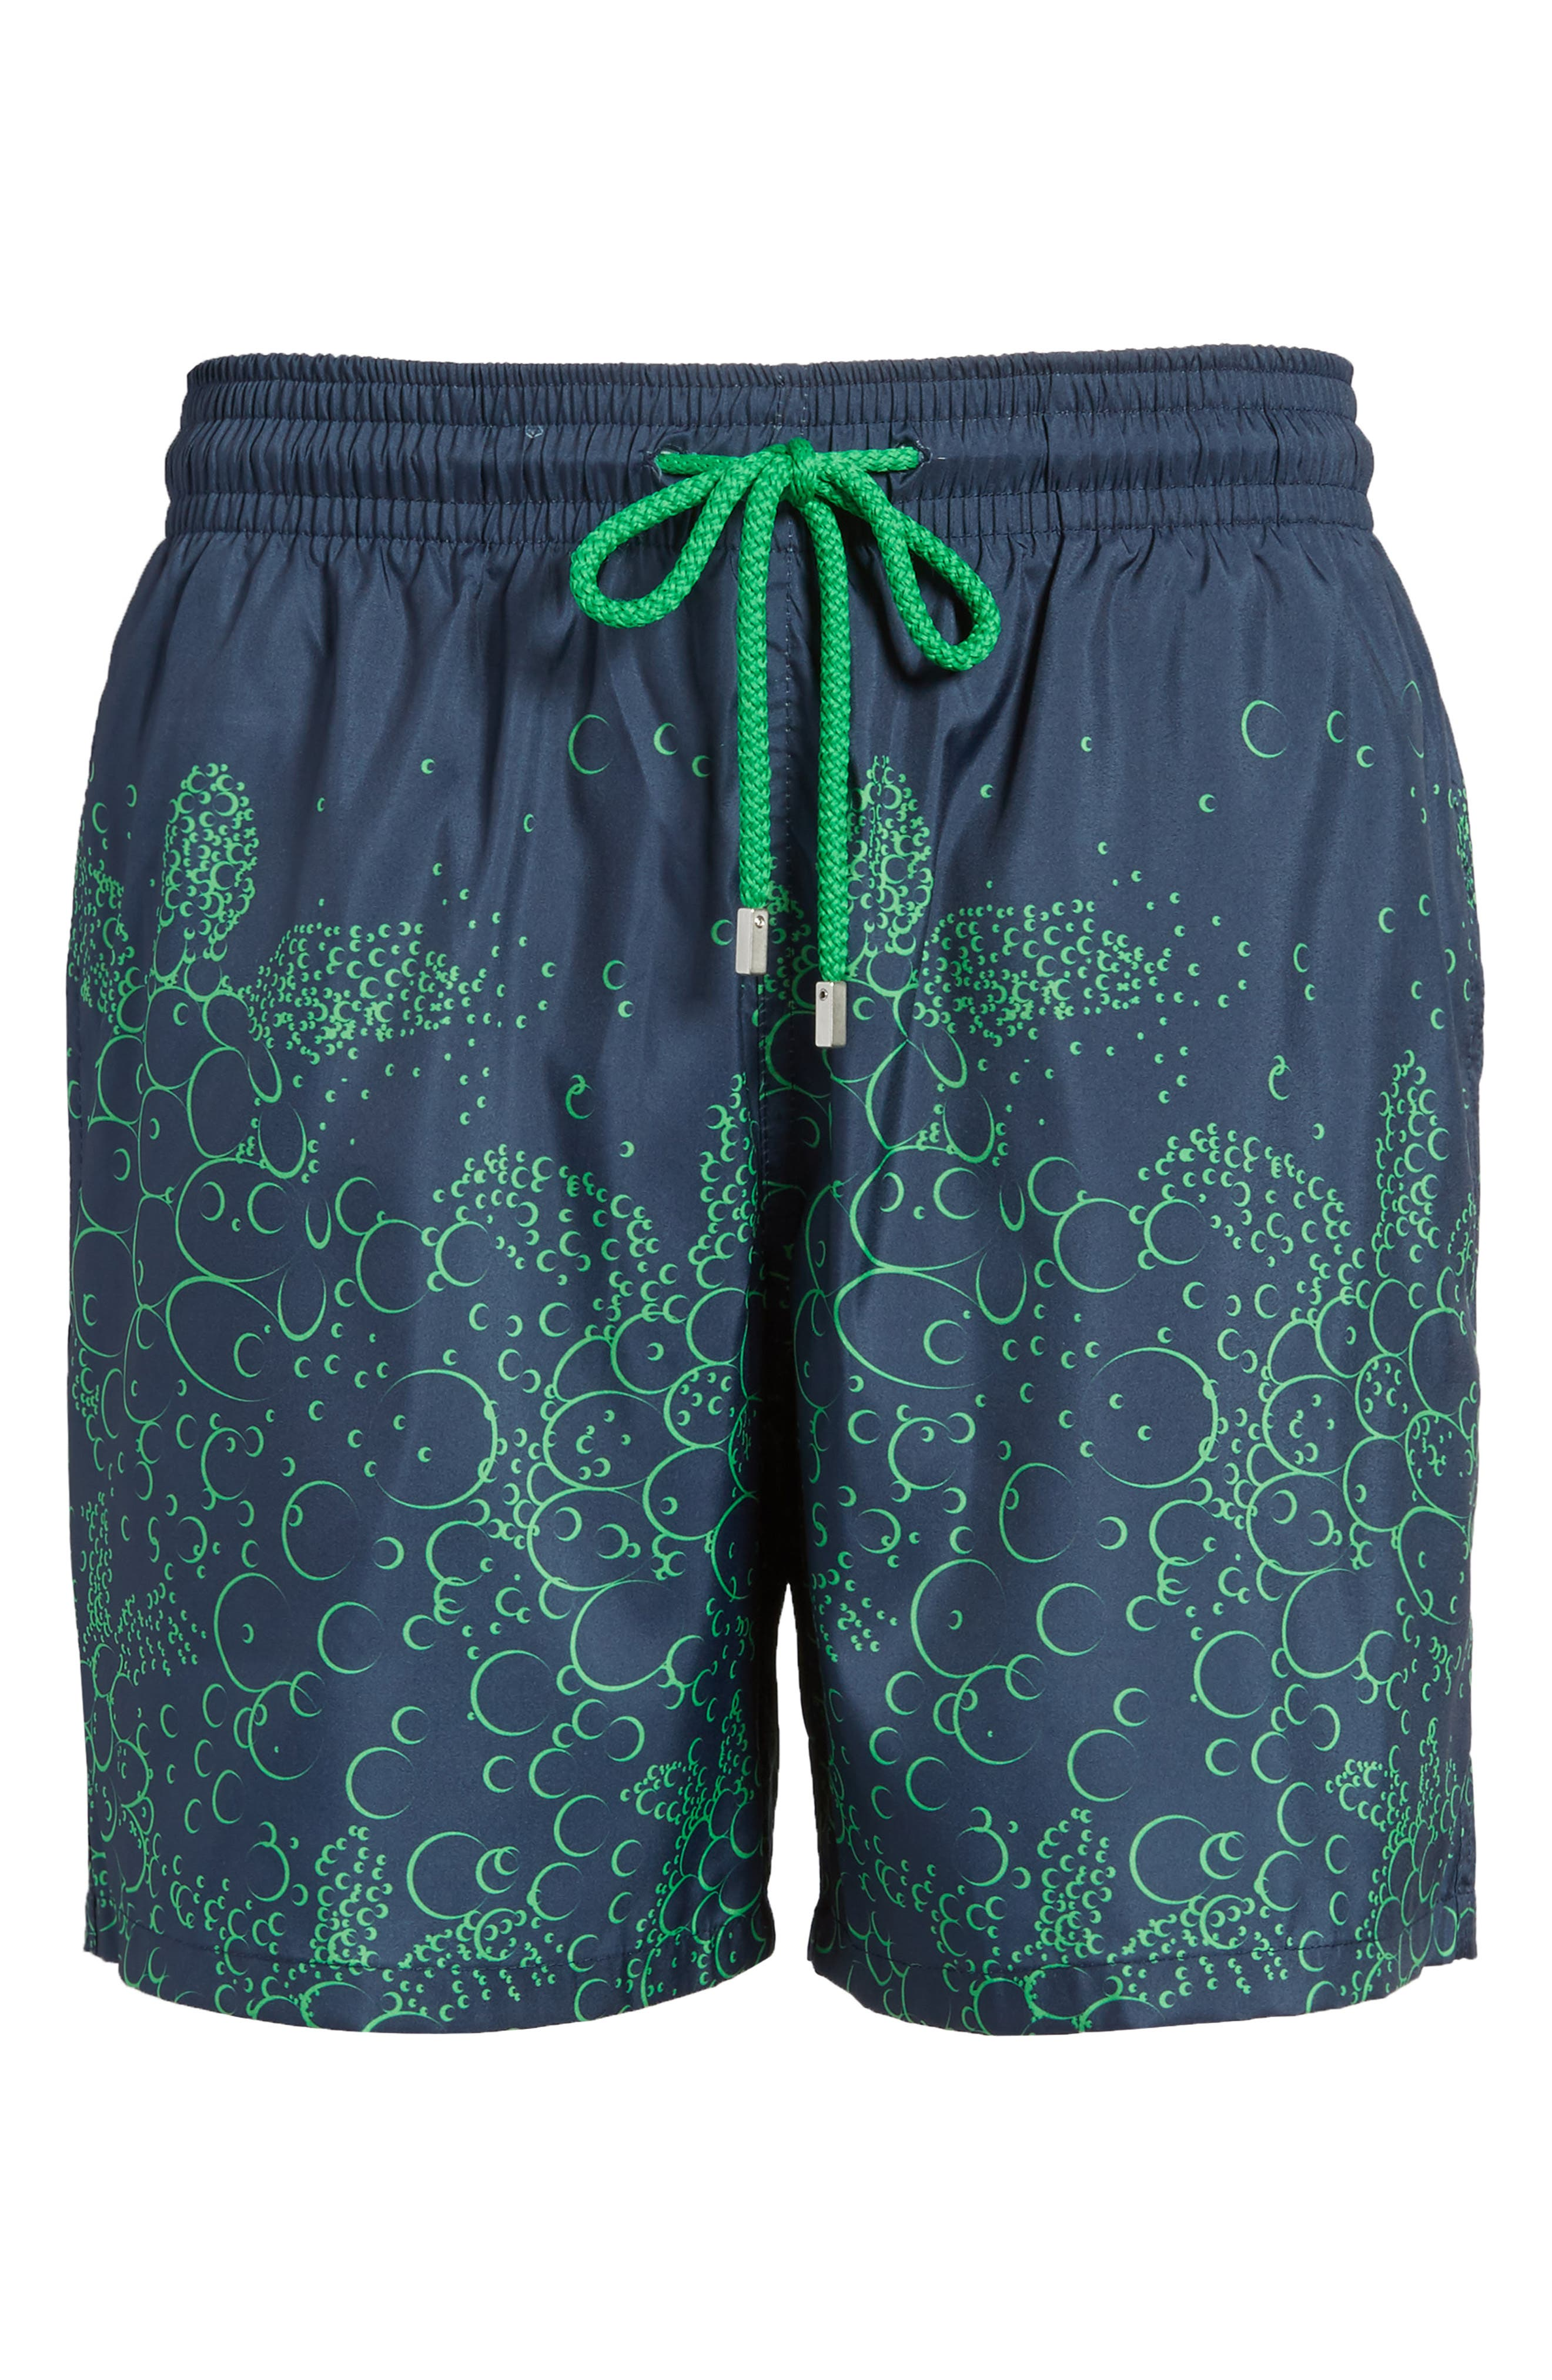 Mahina Bubble Turtles Print Swim Trunks,                             Alternate thumbnail 6, color,                             Navy Blue